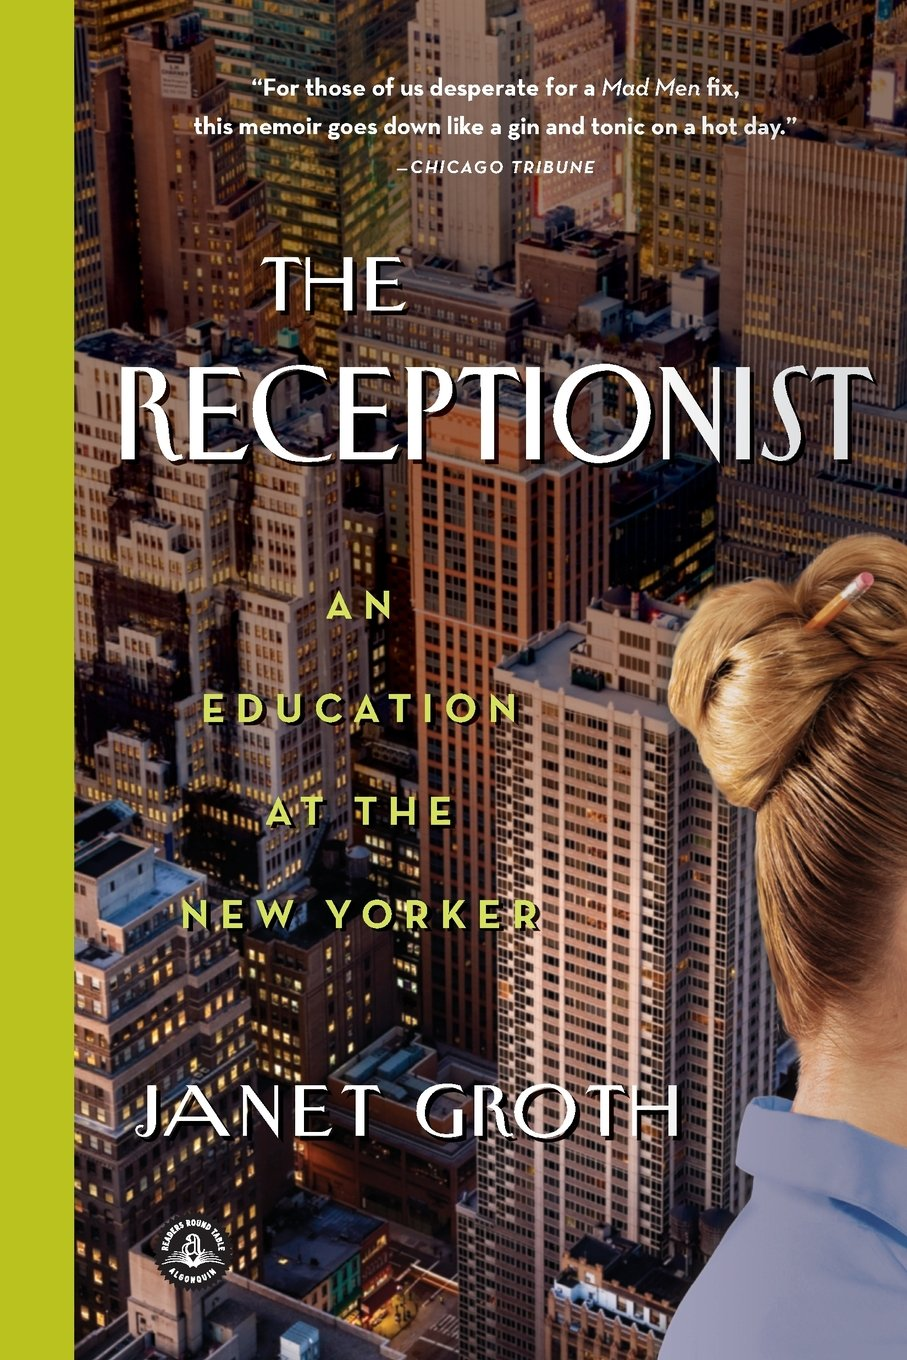 The Receptionist: An Education at The New Yorker pdf epub